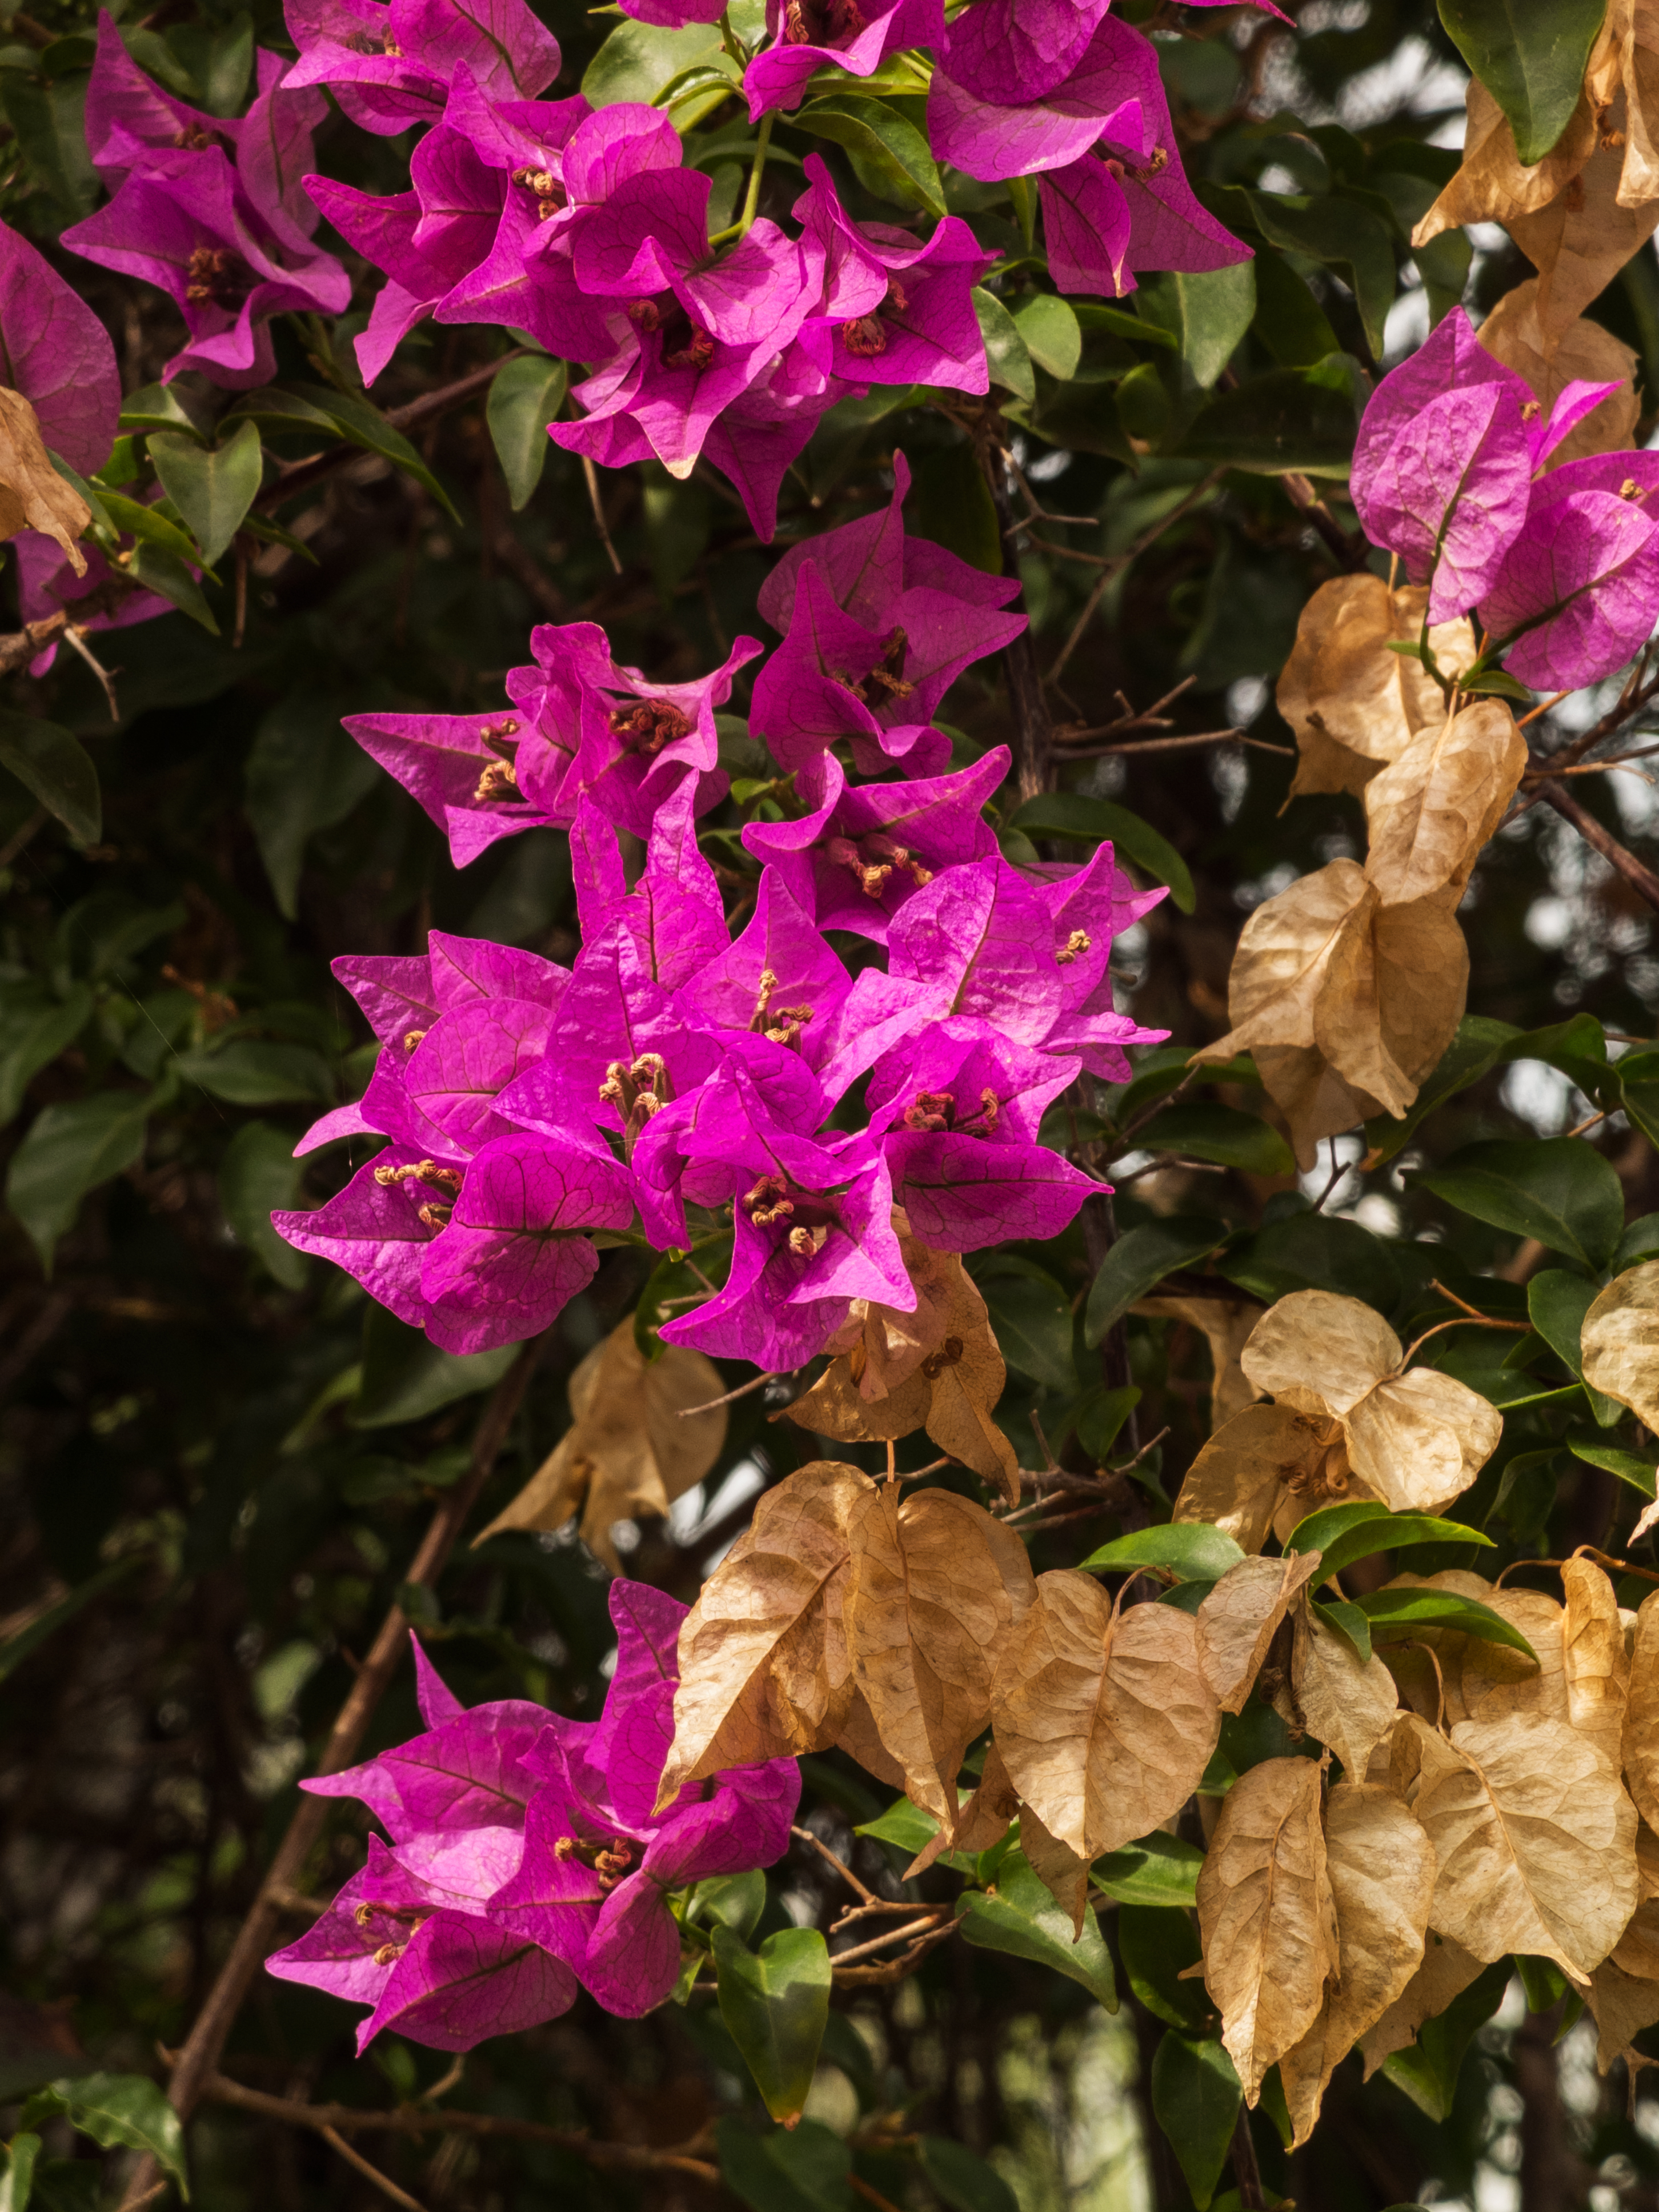 A close up of pink Bougainvillea flowers from Gibraltar.